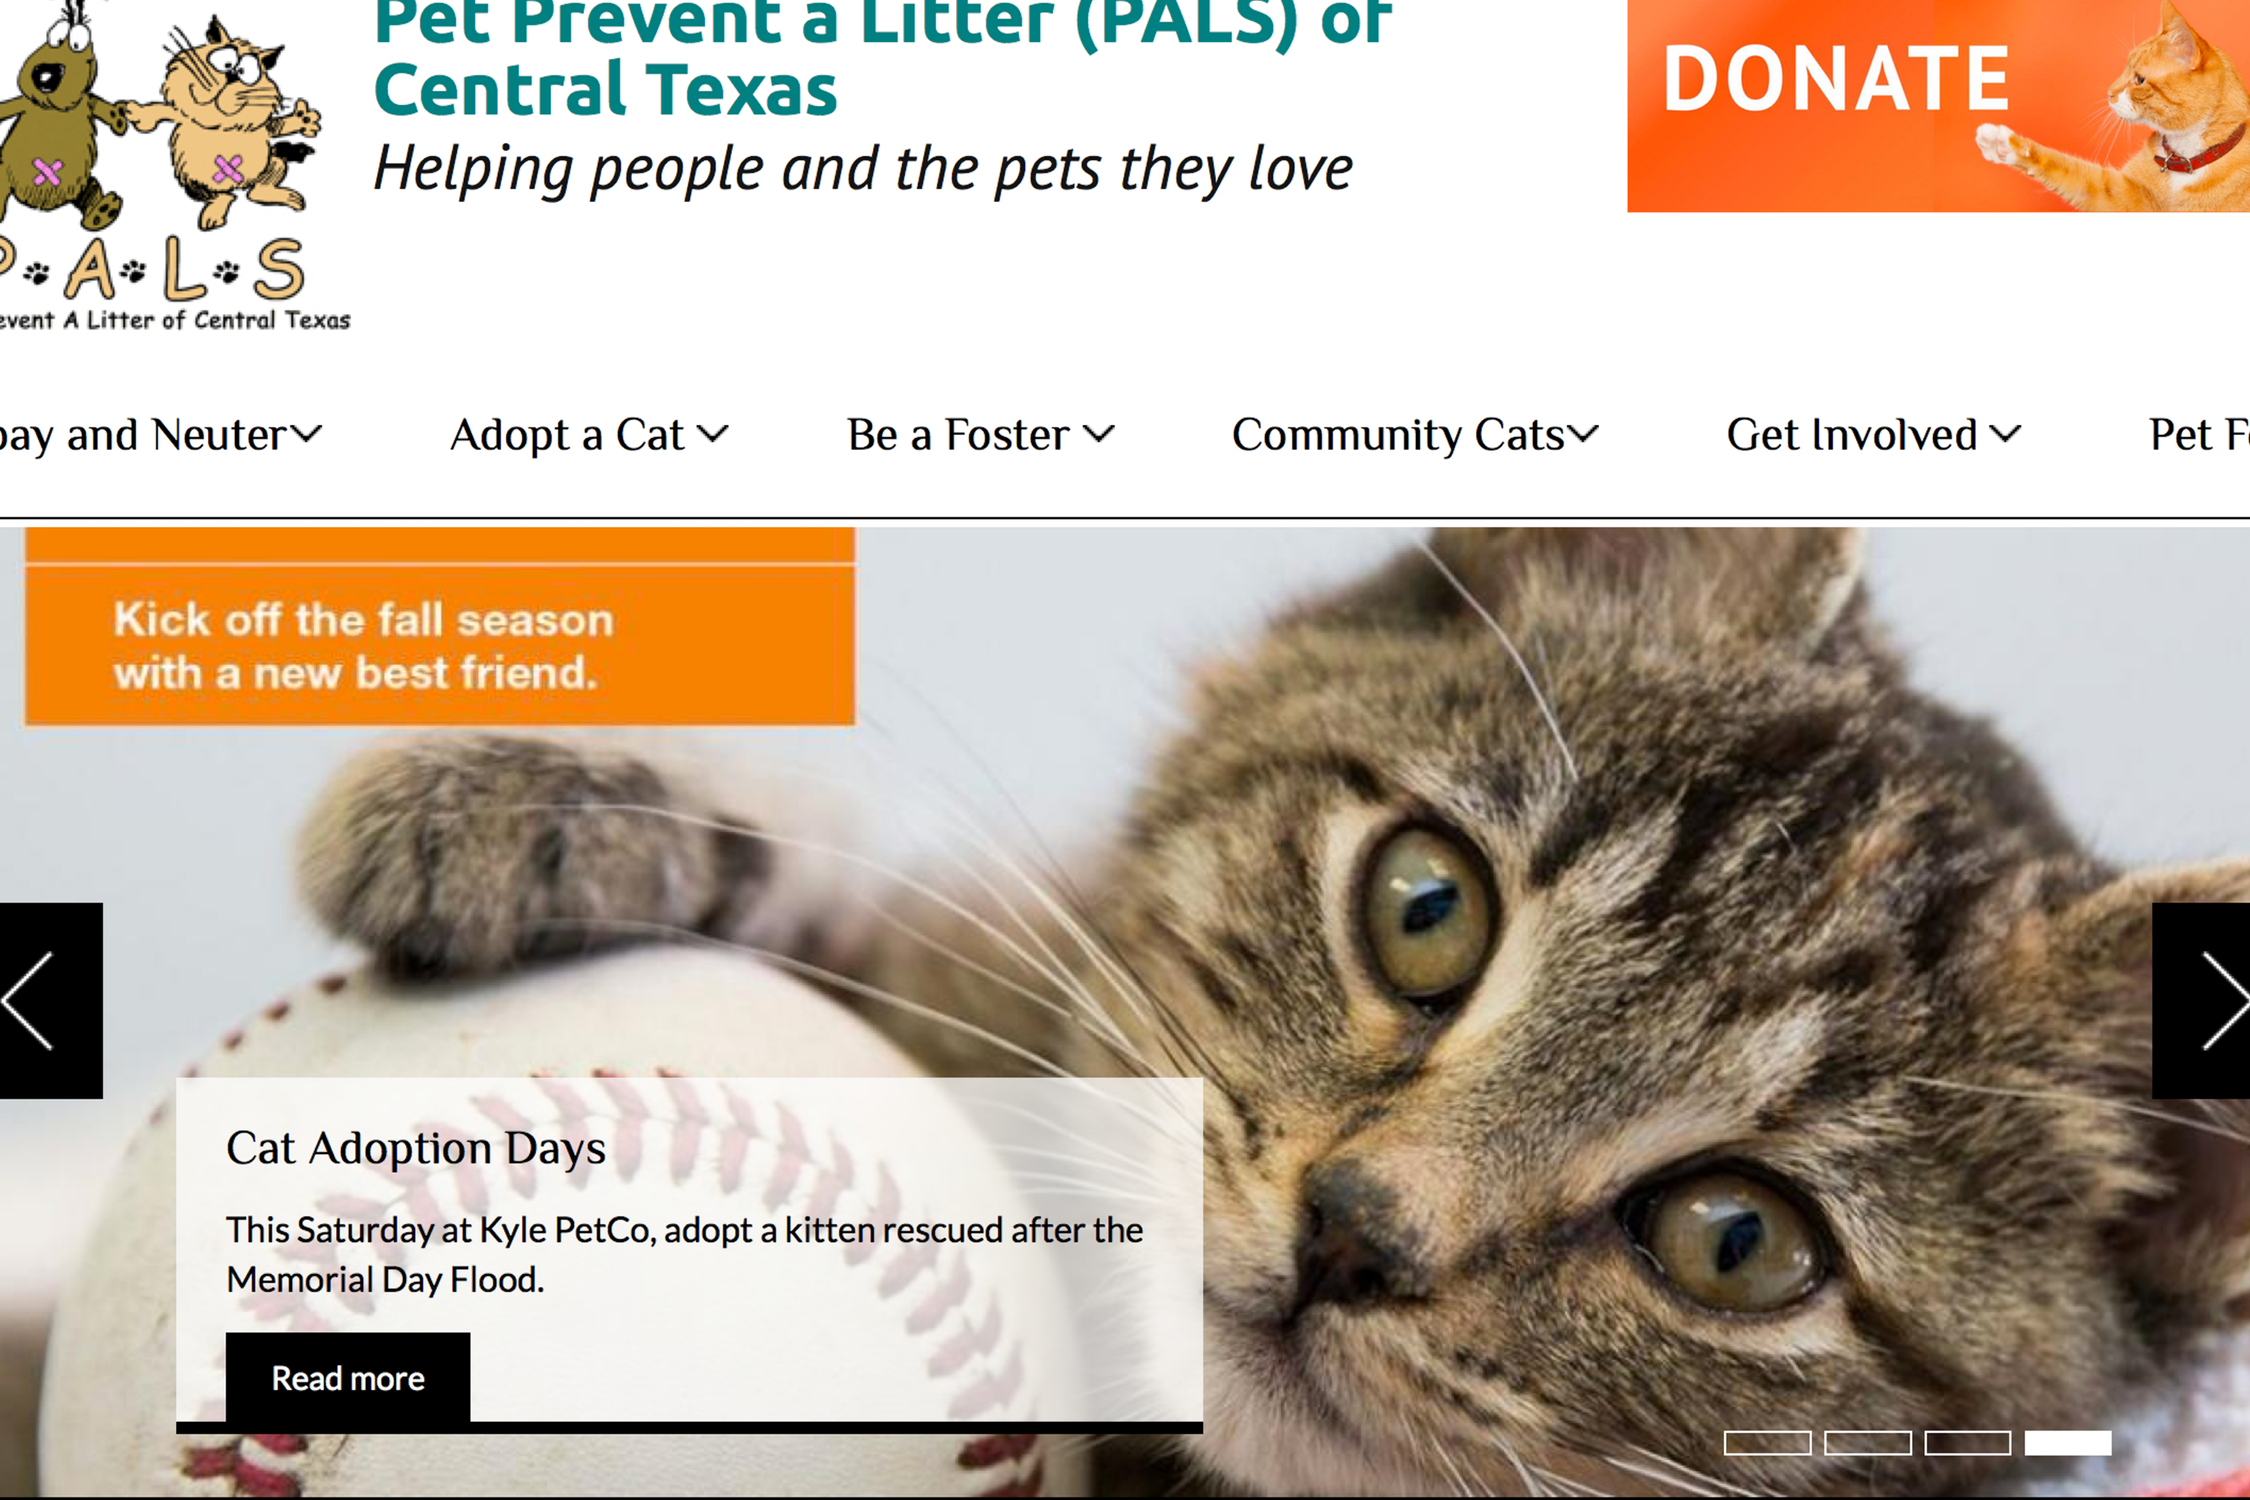 a screenshot of the PET FEST page on the PALS website